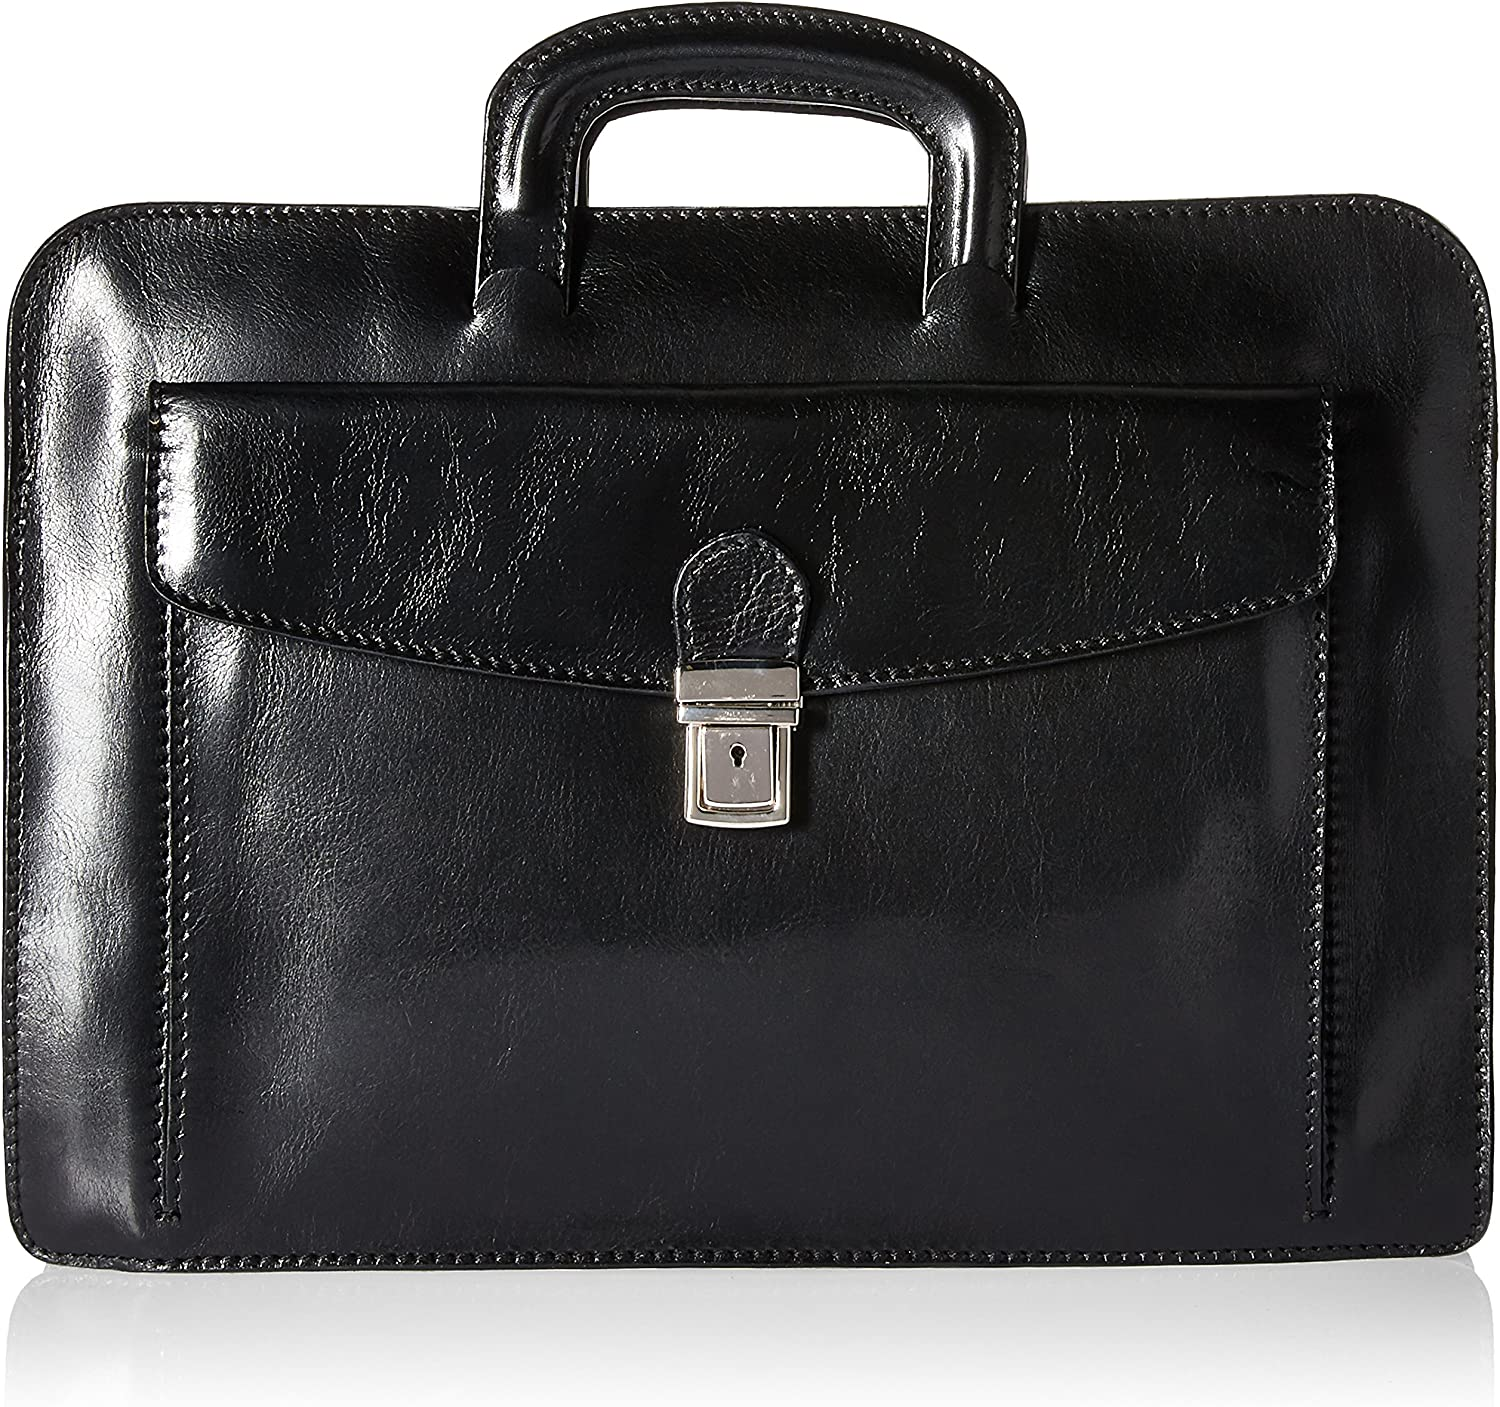 Image of Alberto Bellucci Milano Italian Leather Roman Portfolio Document Case Bag Cases & Sleeves